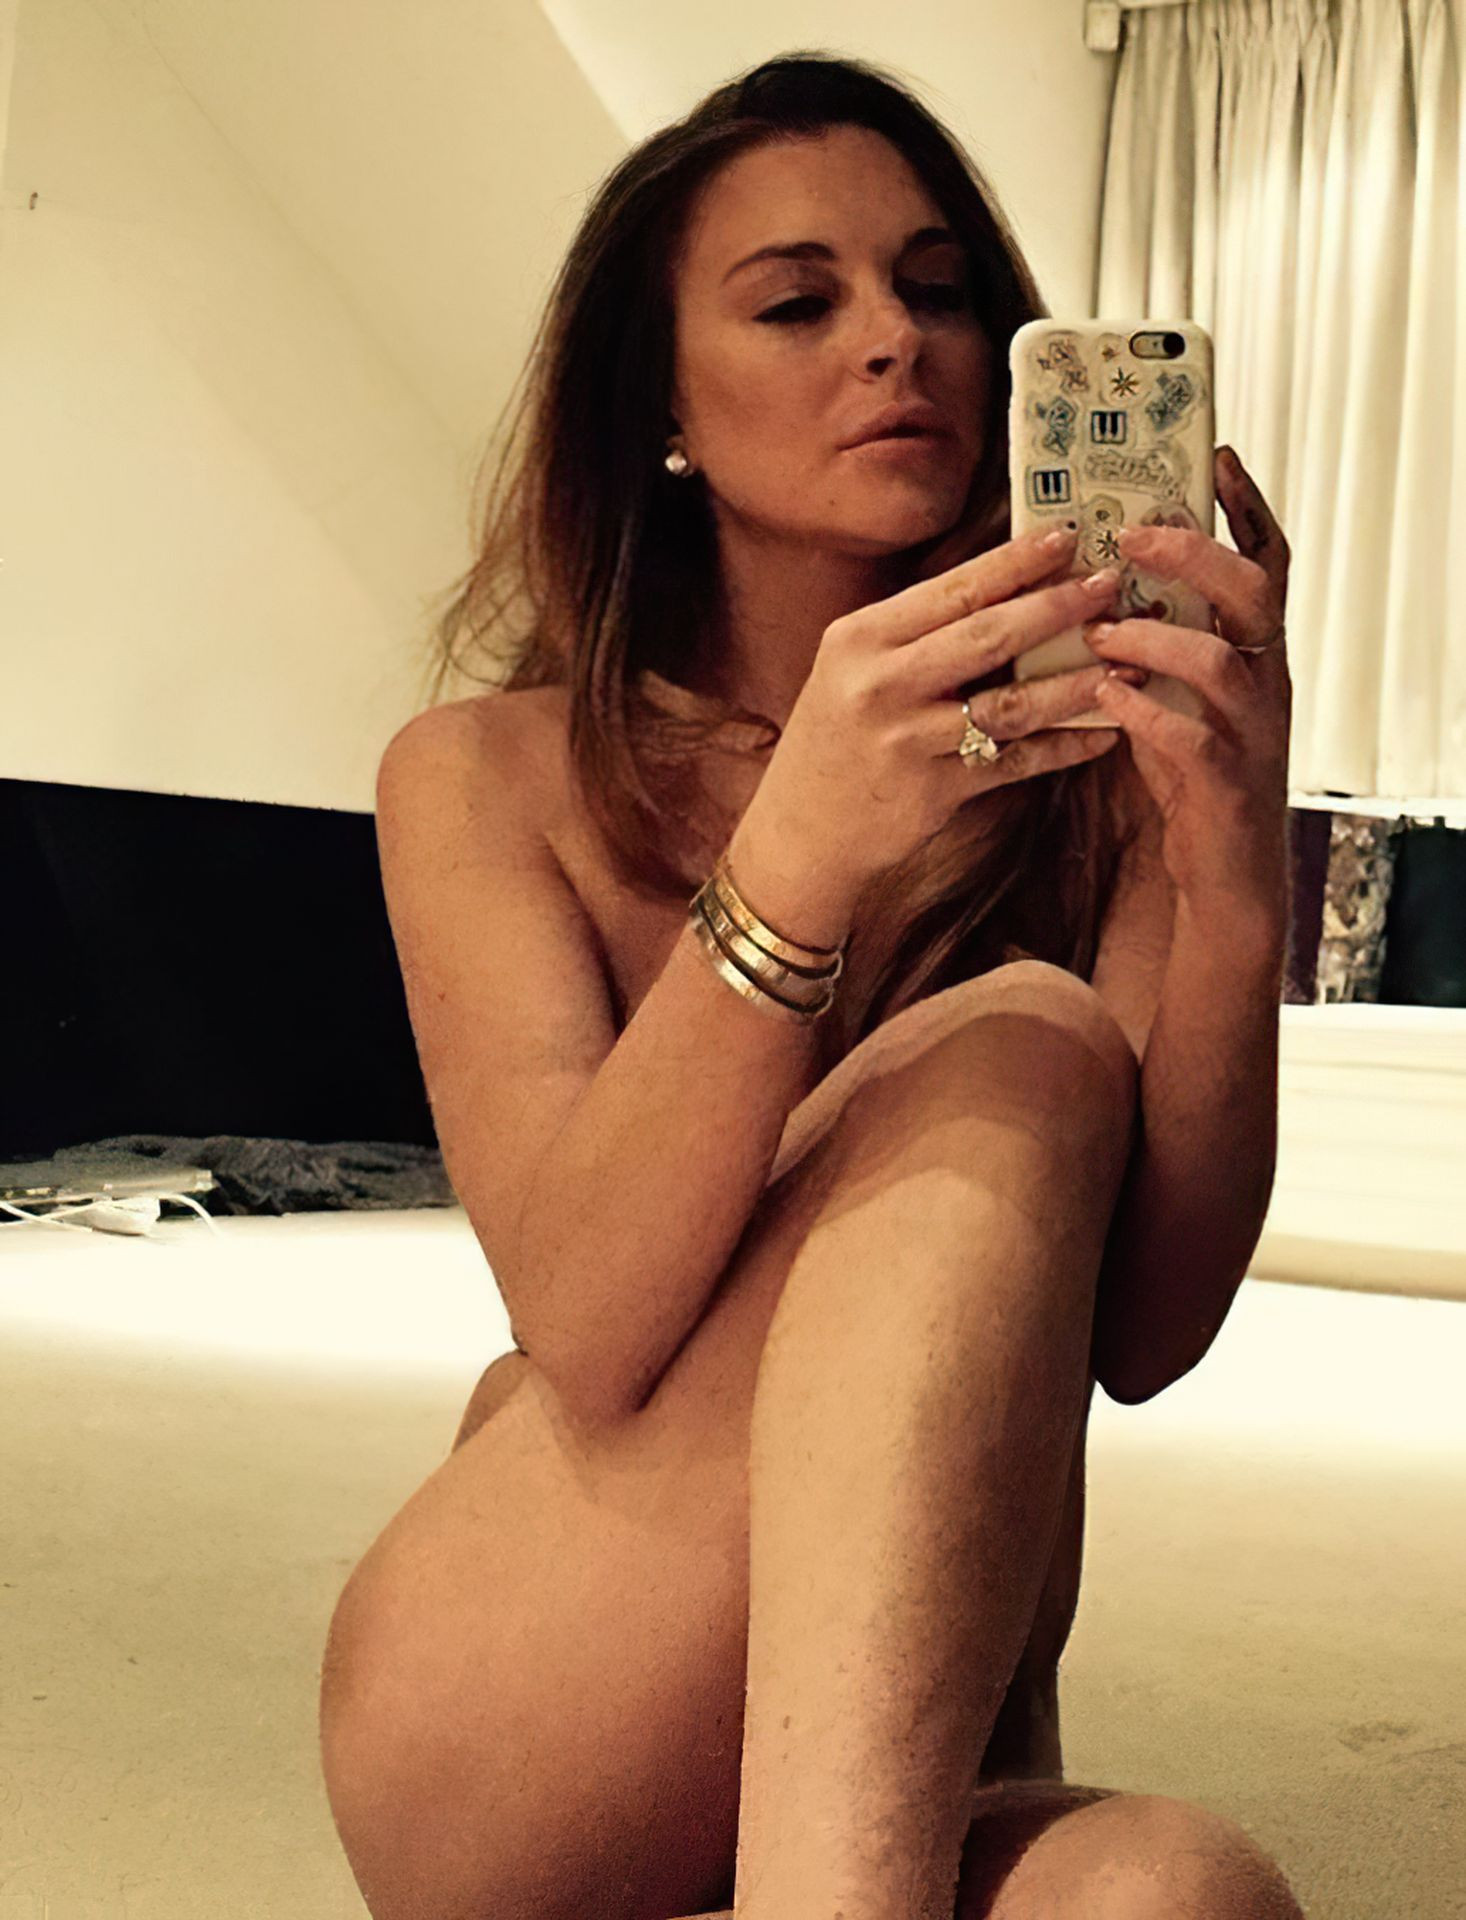 Lindsay Lohan Sexy Leaked The Fappening fappenings.com 6